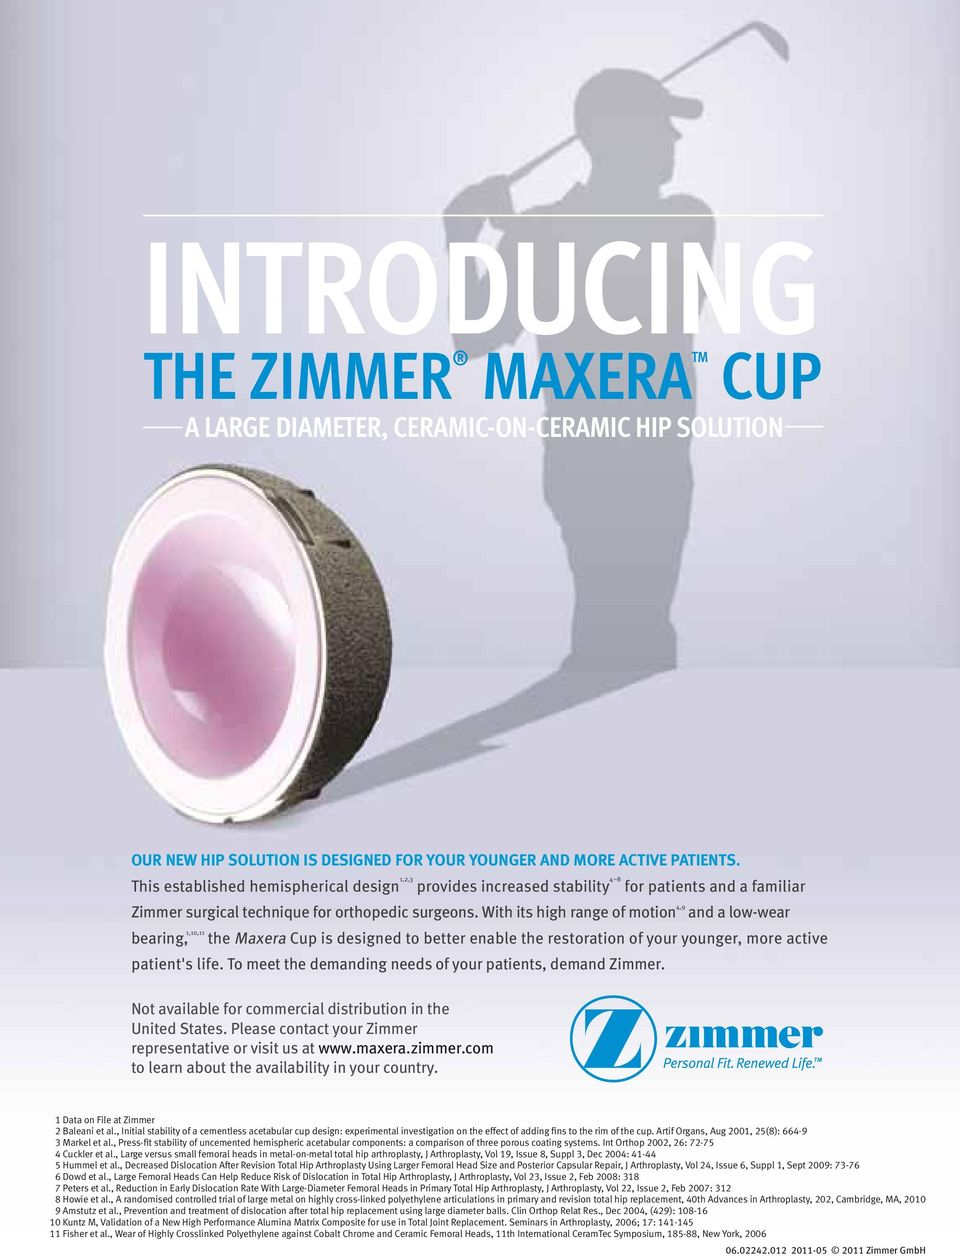 With its high range of motion 4,9 and a low-wear bearing, 1,10,11 the Maxera Cup is designed to better enable the restoration of your younger, more active patient's life.